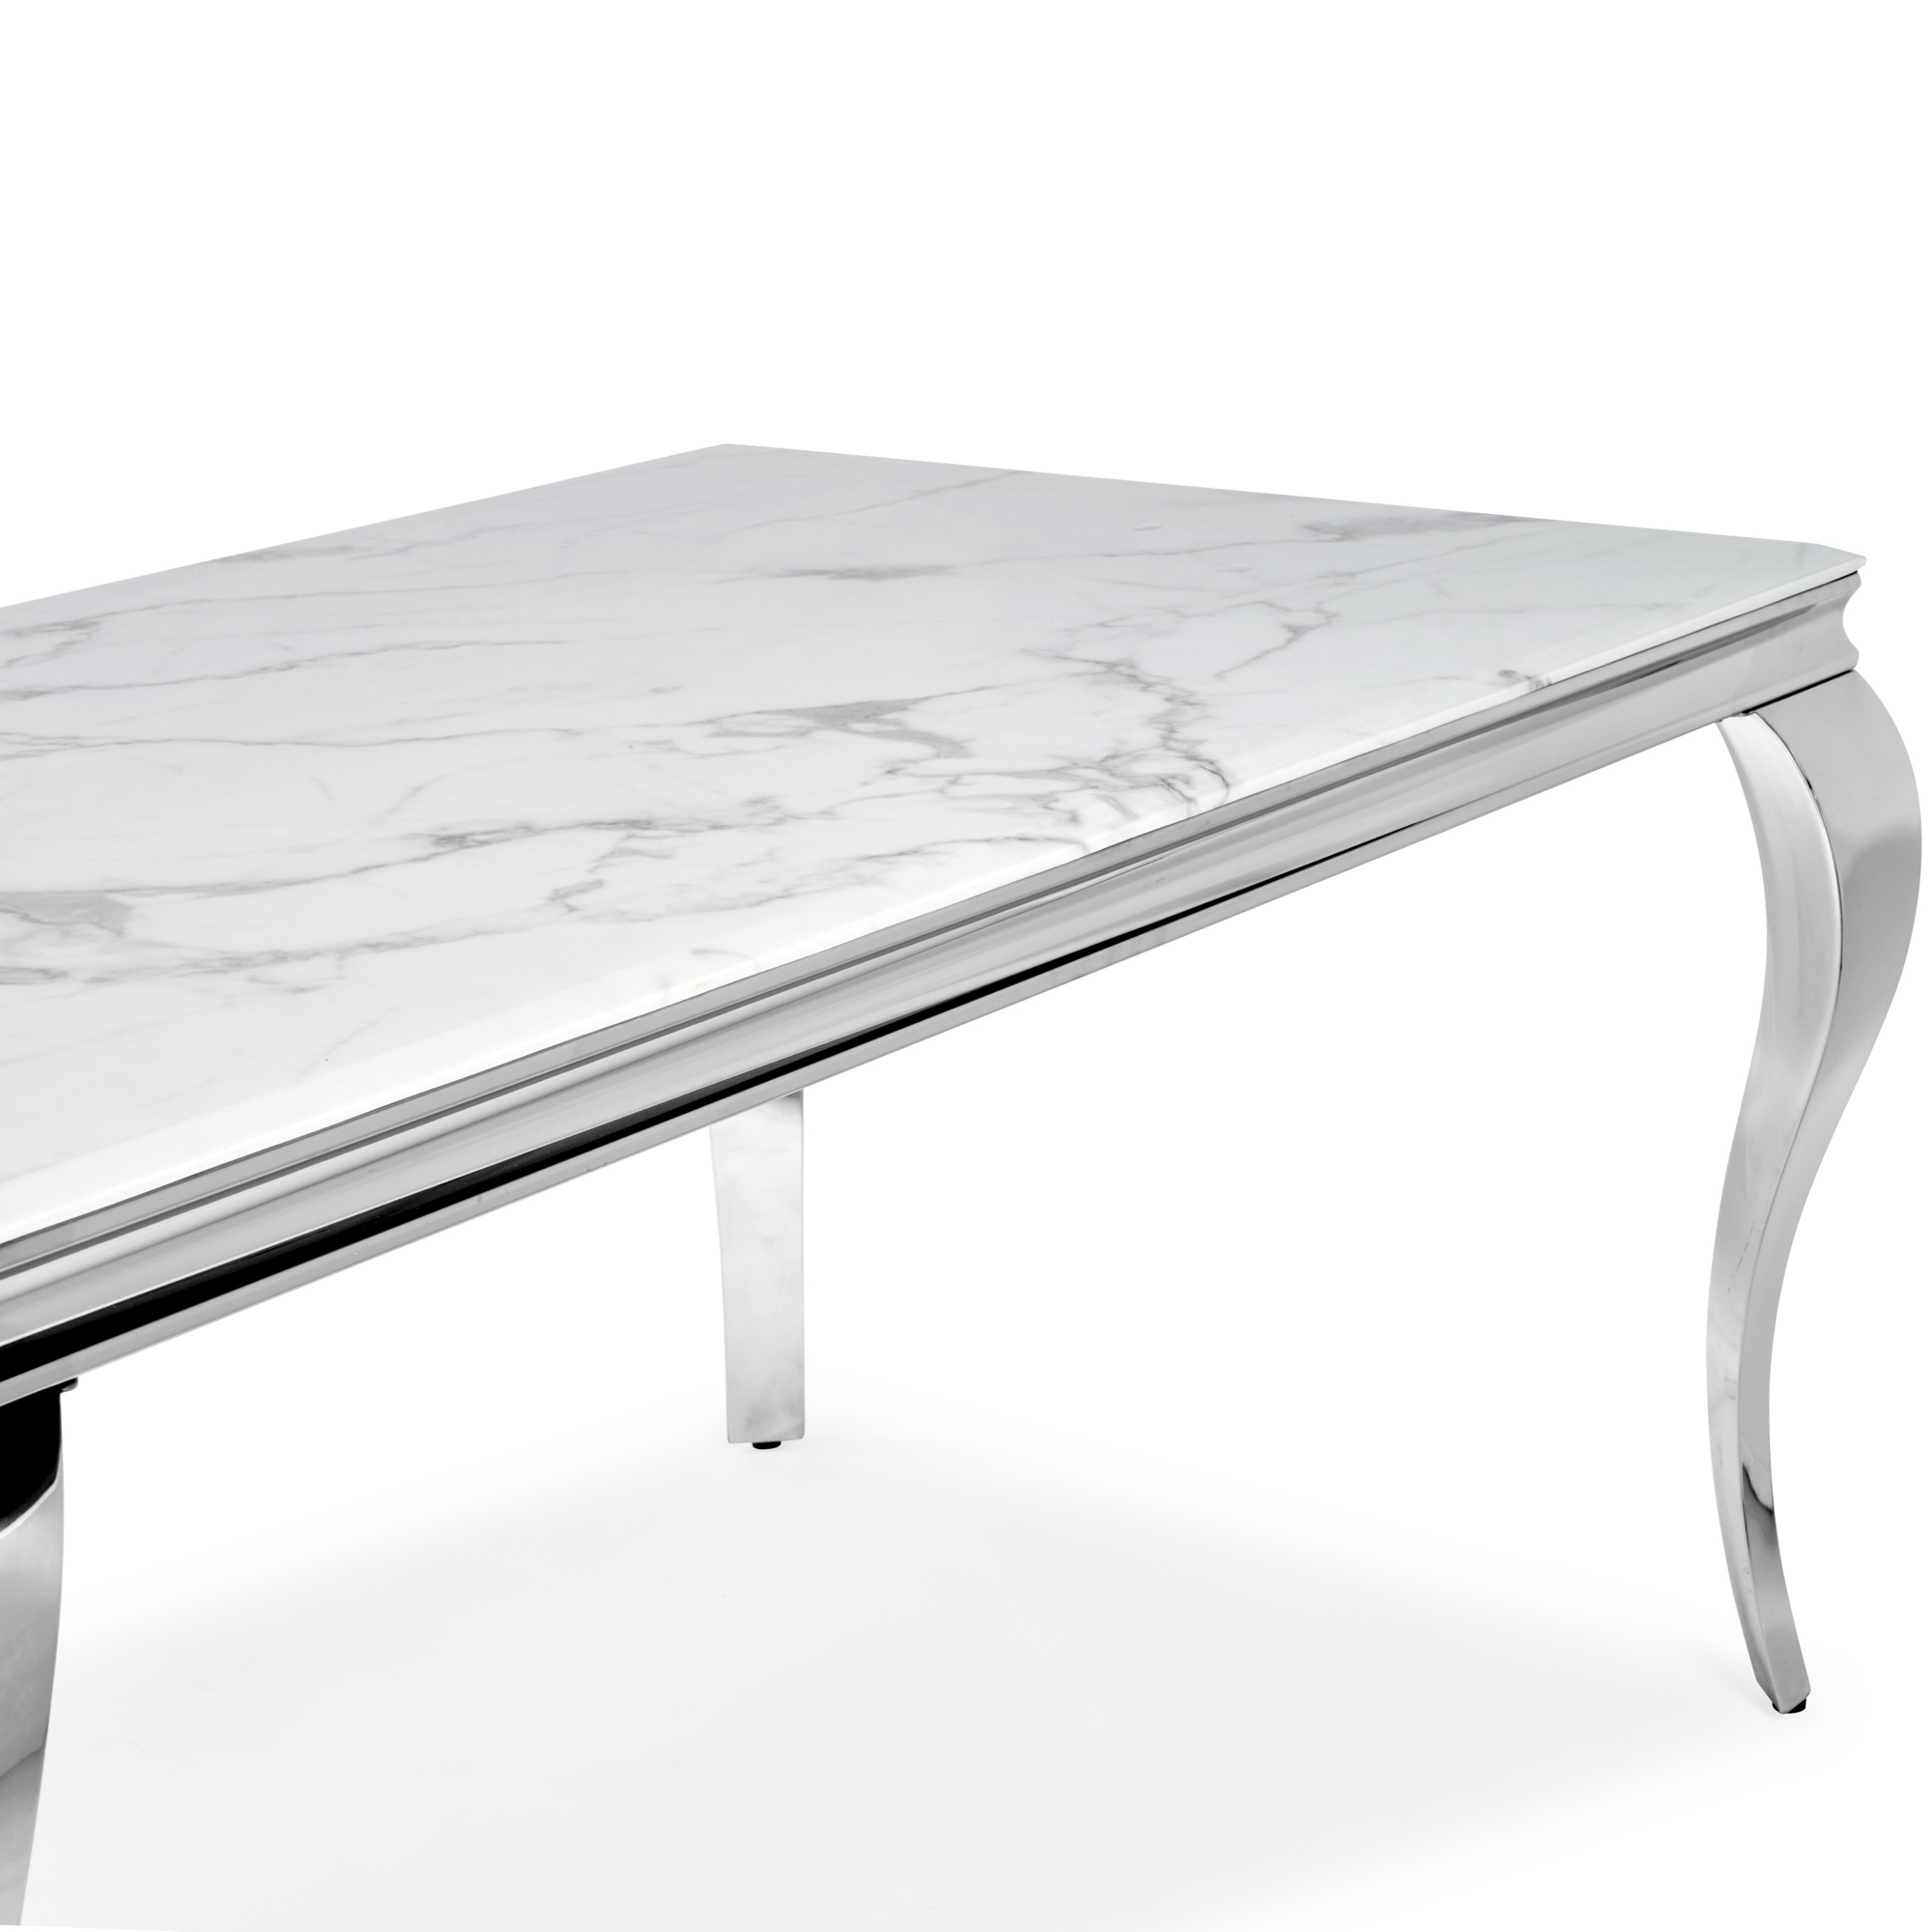 1.6m Louis White Dining Table with Solid Marble Top & Polished Steel Frame